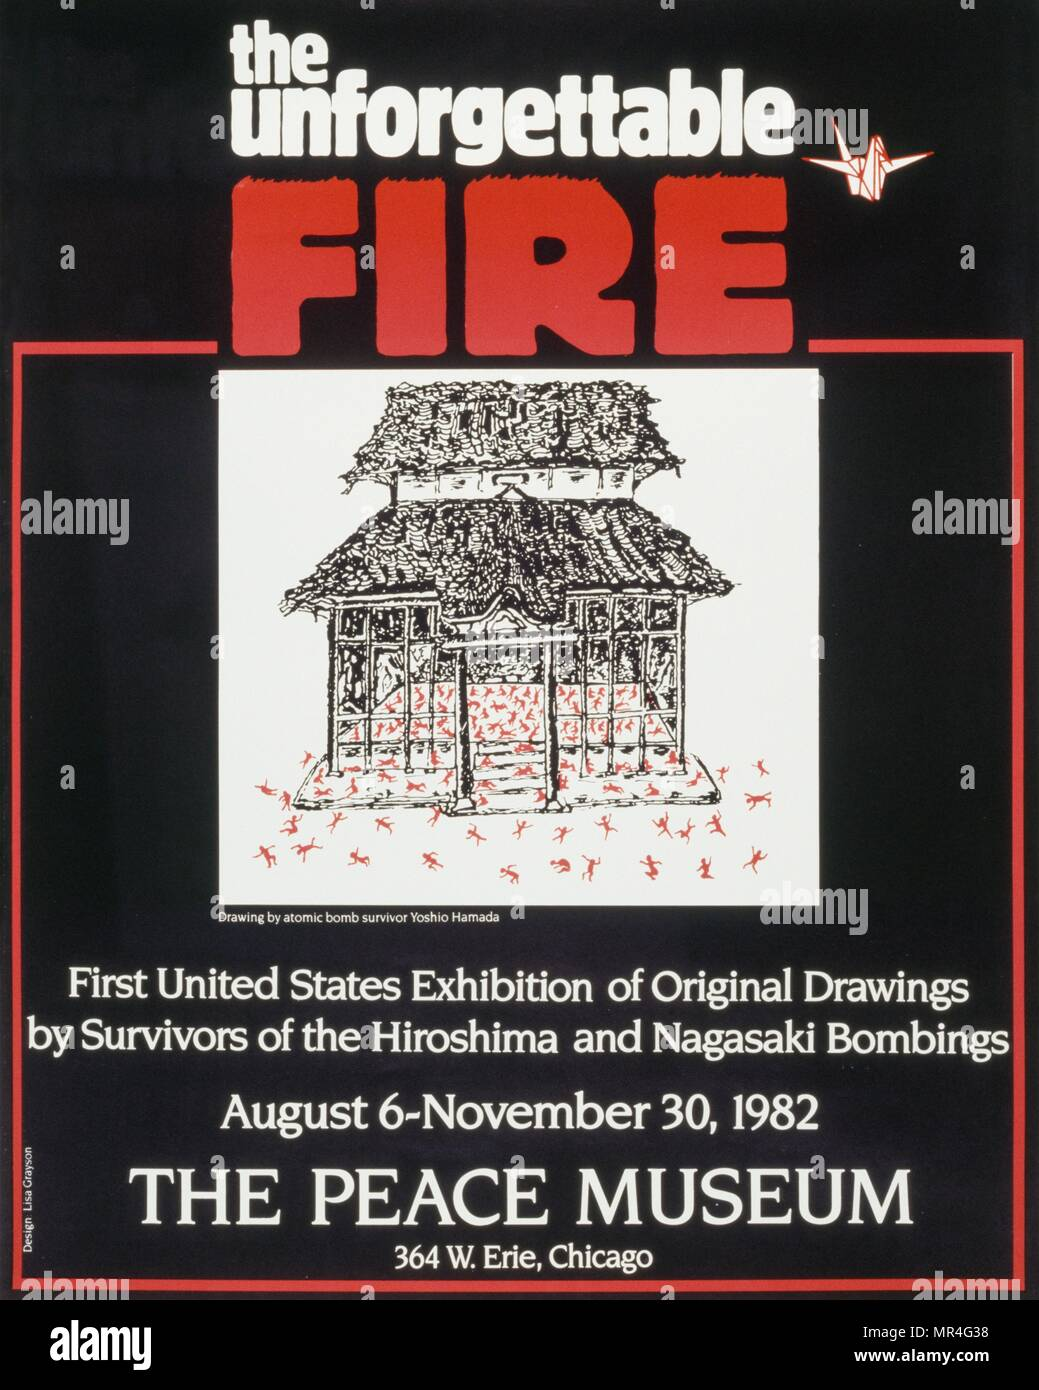 Poster for the Peace Museum exhibition on Survivors of the Nuclear Bomb at Hiroshima. 1982, Chicago - Stock Image